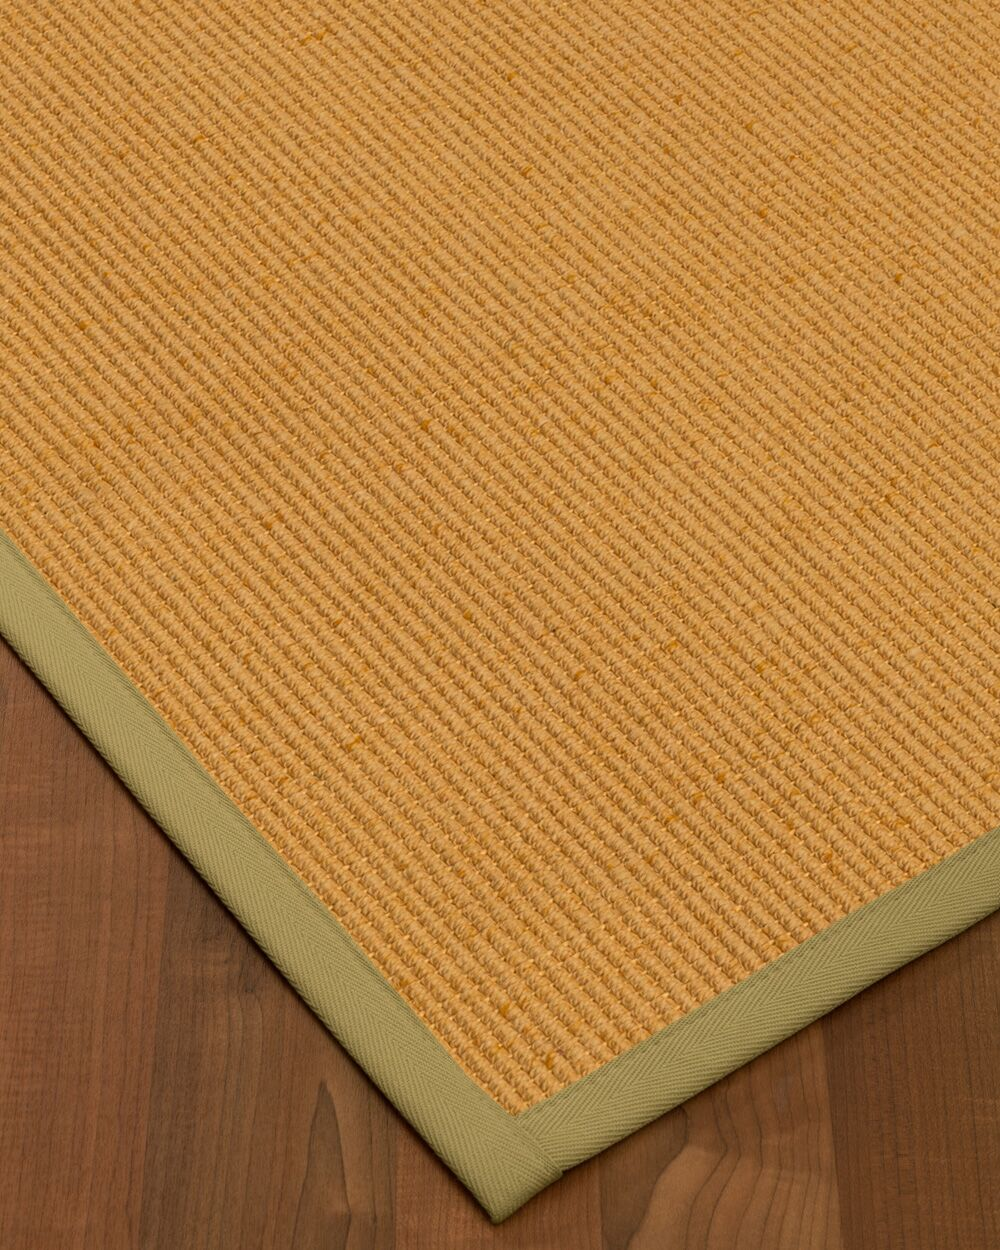 Vannatter Border Hand-Woven Green/Natural Area Rug Rug Size: Rectangle 9' x 12', Rug Pad Included: Yes